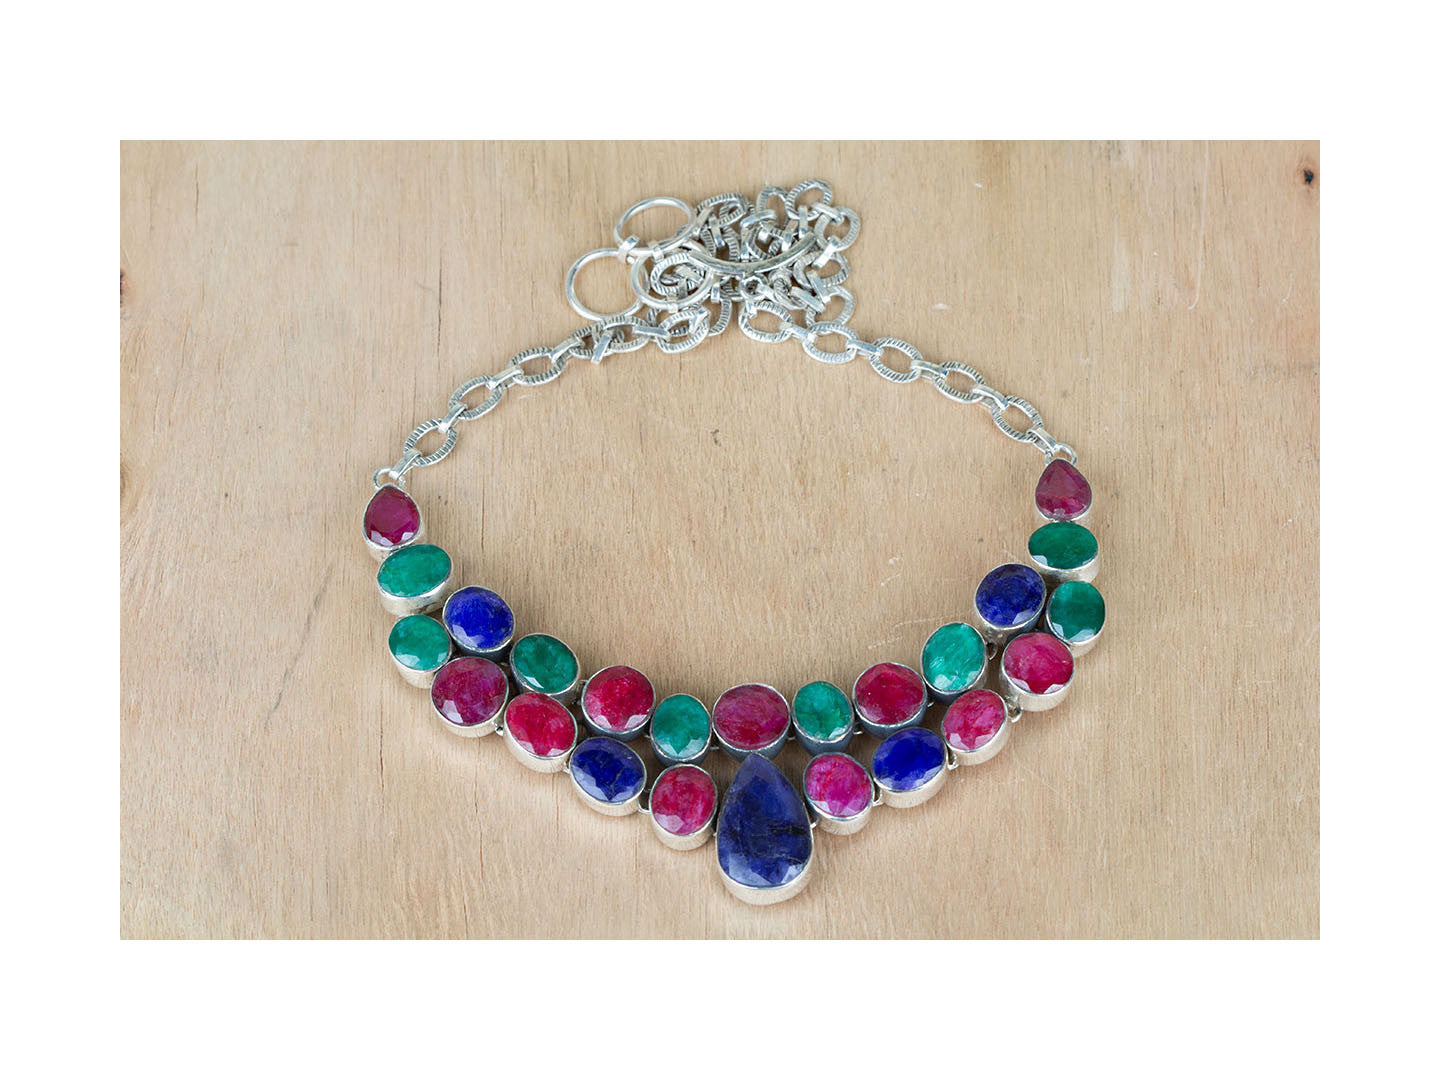 Sensational Ruby Emerald & Sapphire Necklace In Sterling Silver